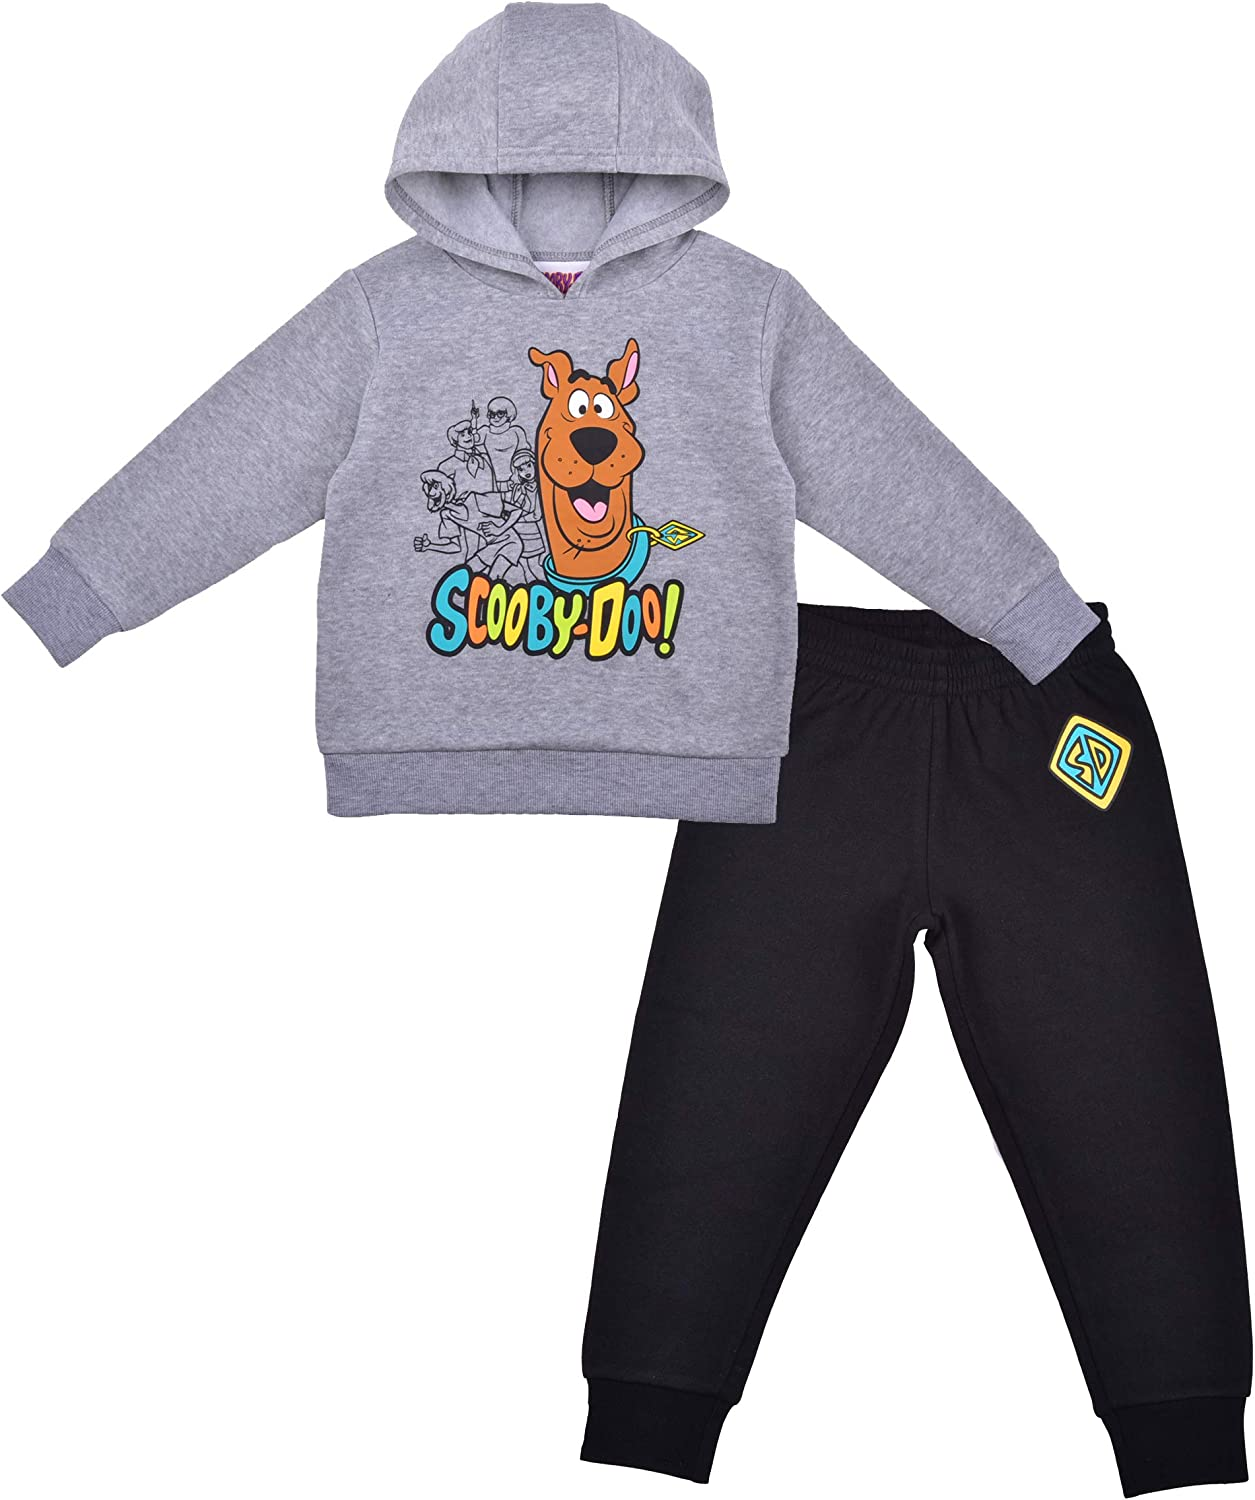 2 Pack Scooby Doo Hoodie and Jogger Pant Set, Comfy...